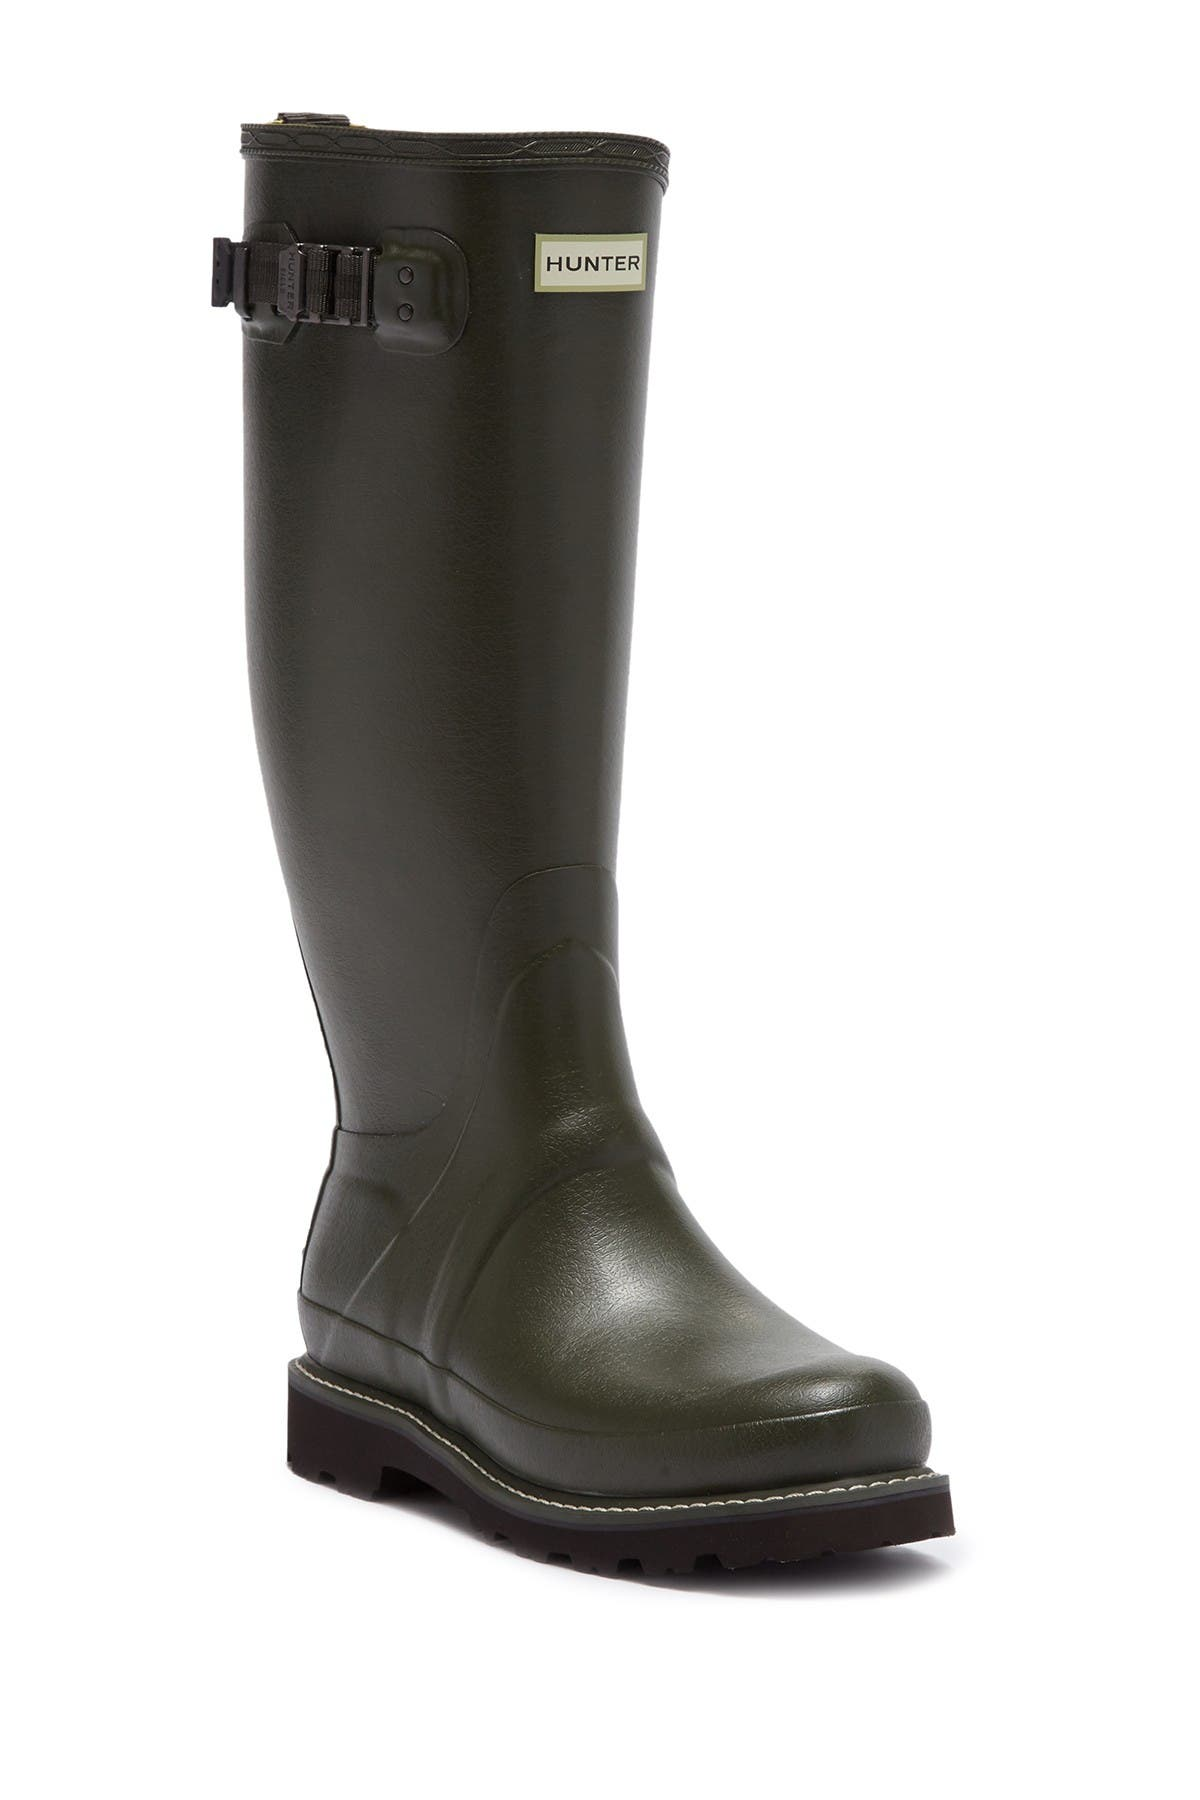 Image of Hunter Balmoral Sovereign Waterproof Boots